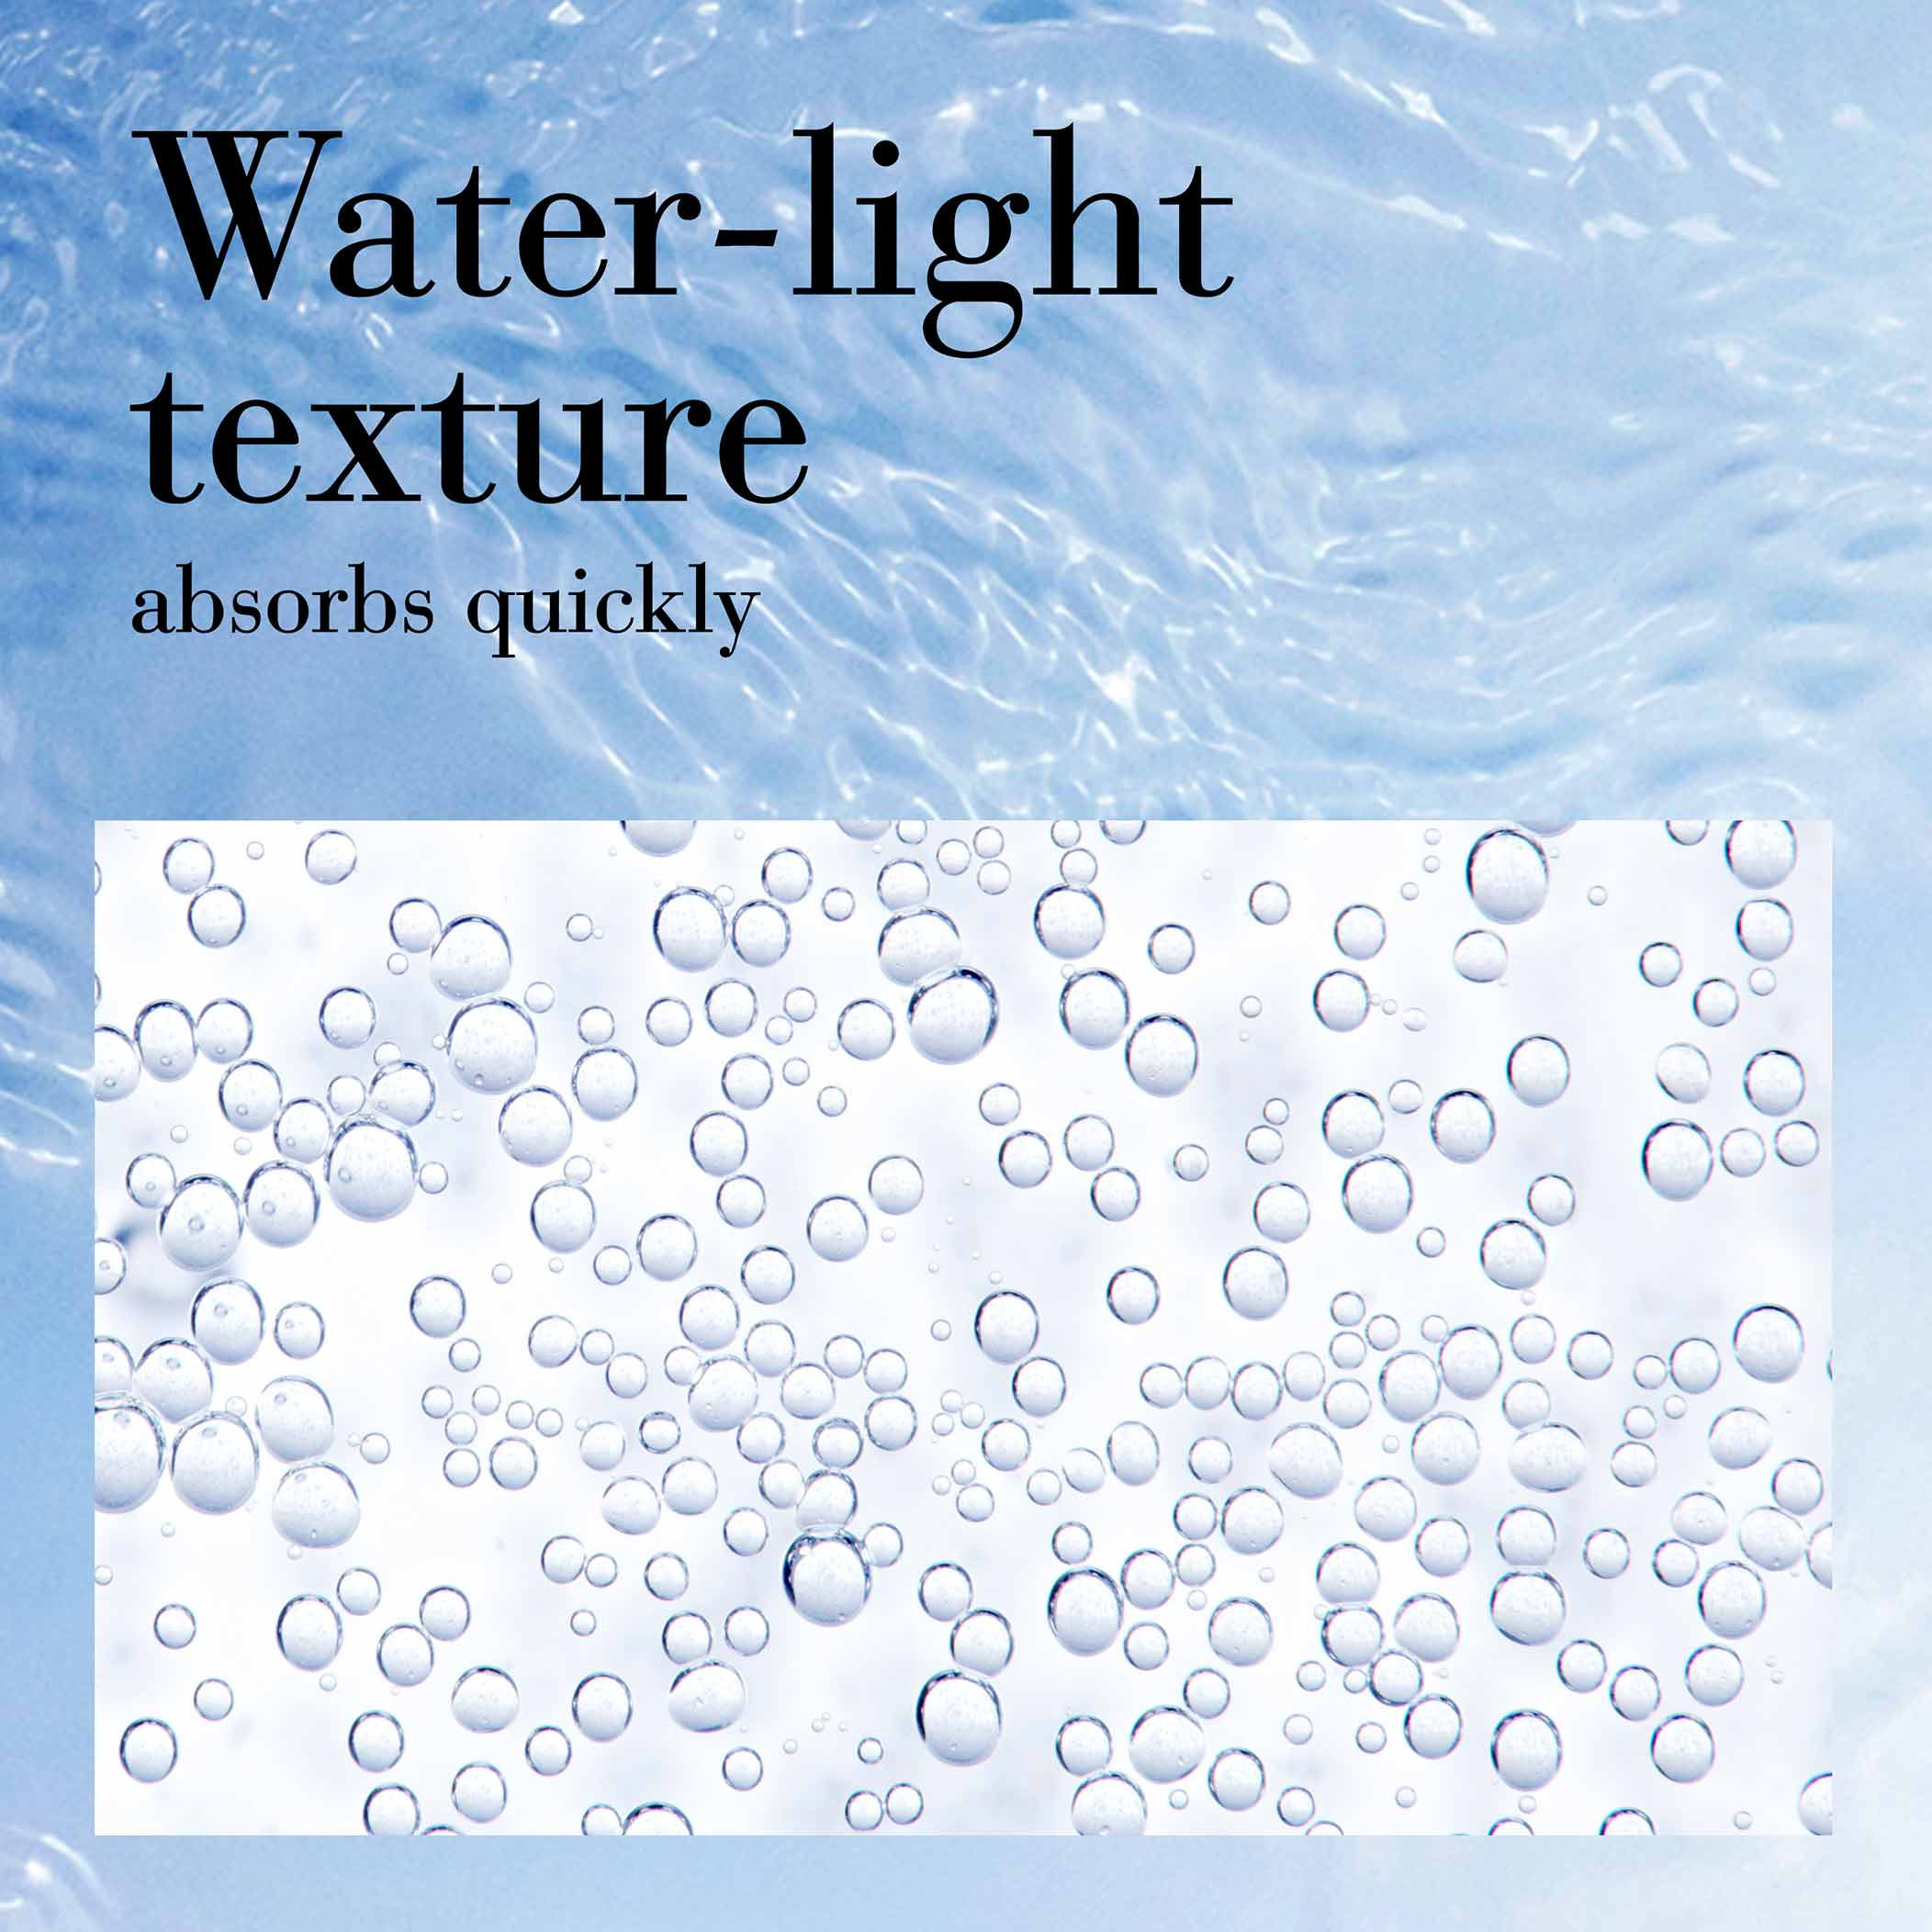 Water-light texture absorbs quickly